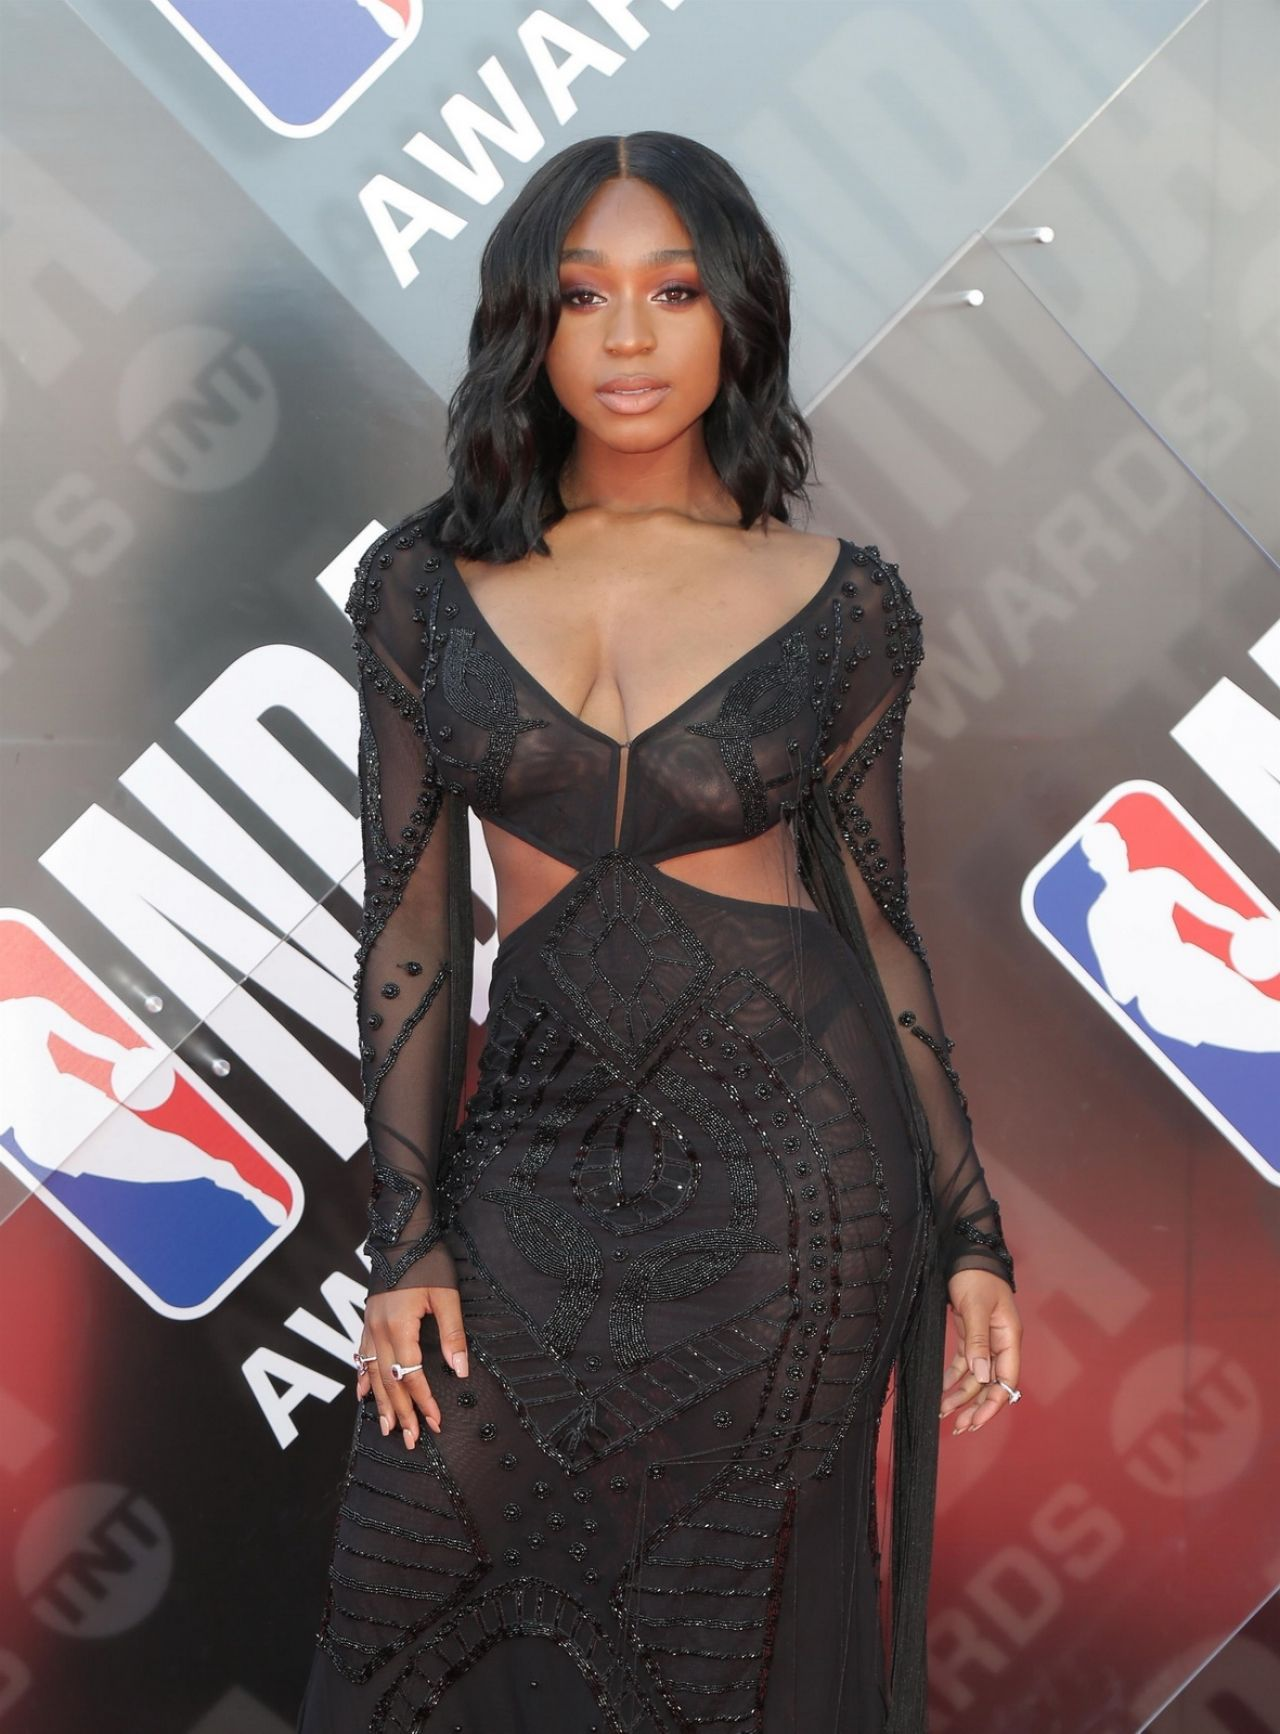 Normani Kordei 2018 Nba Awards In Santa Monica